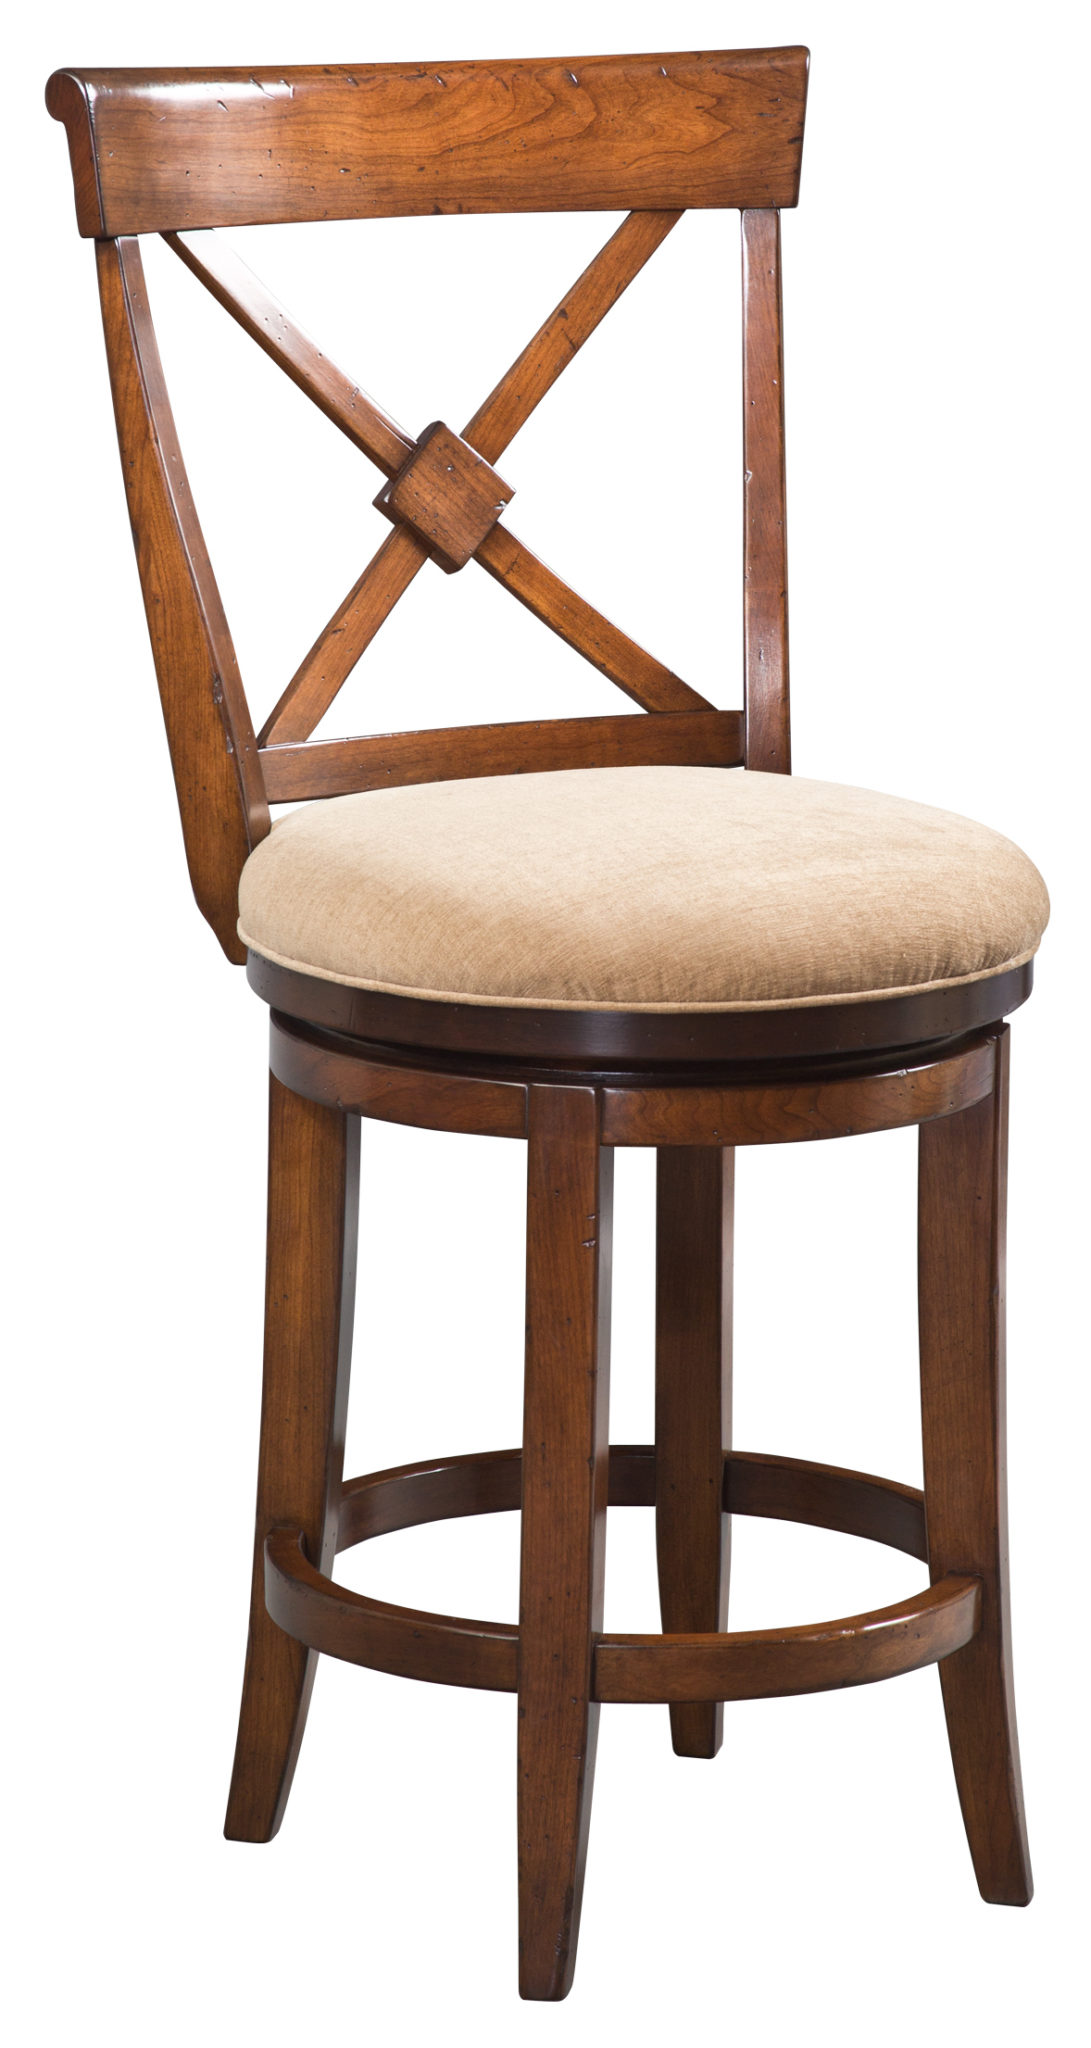 Swivel Hinsdale Stool Image